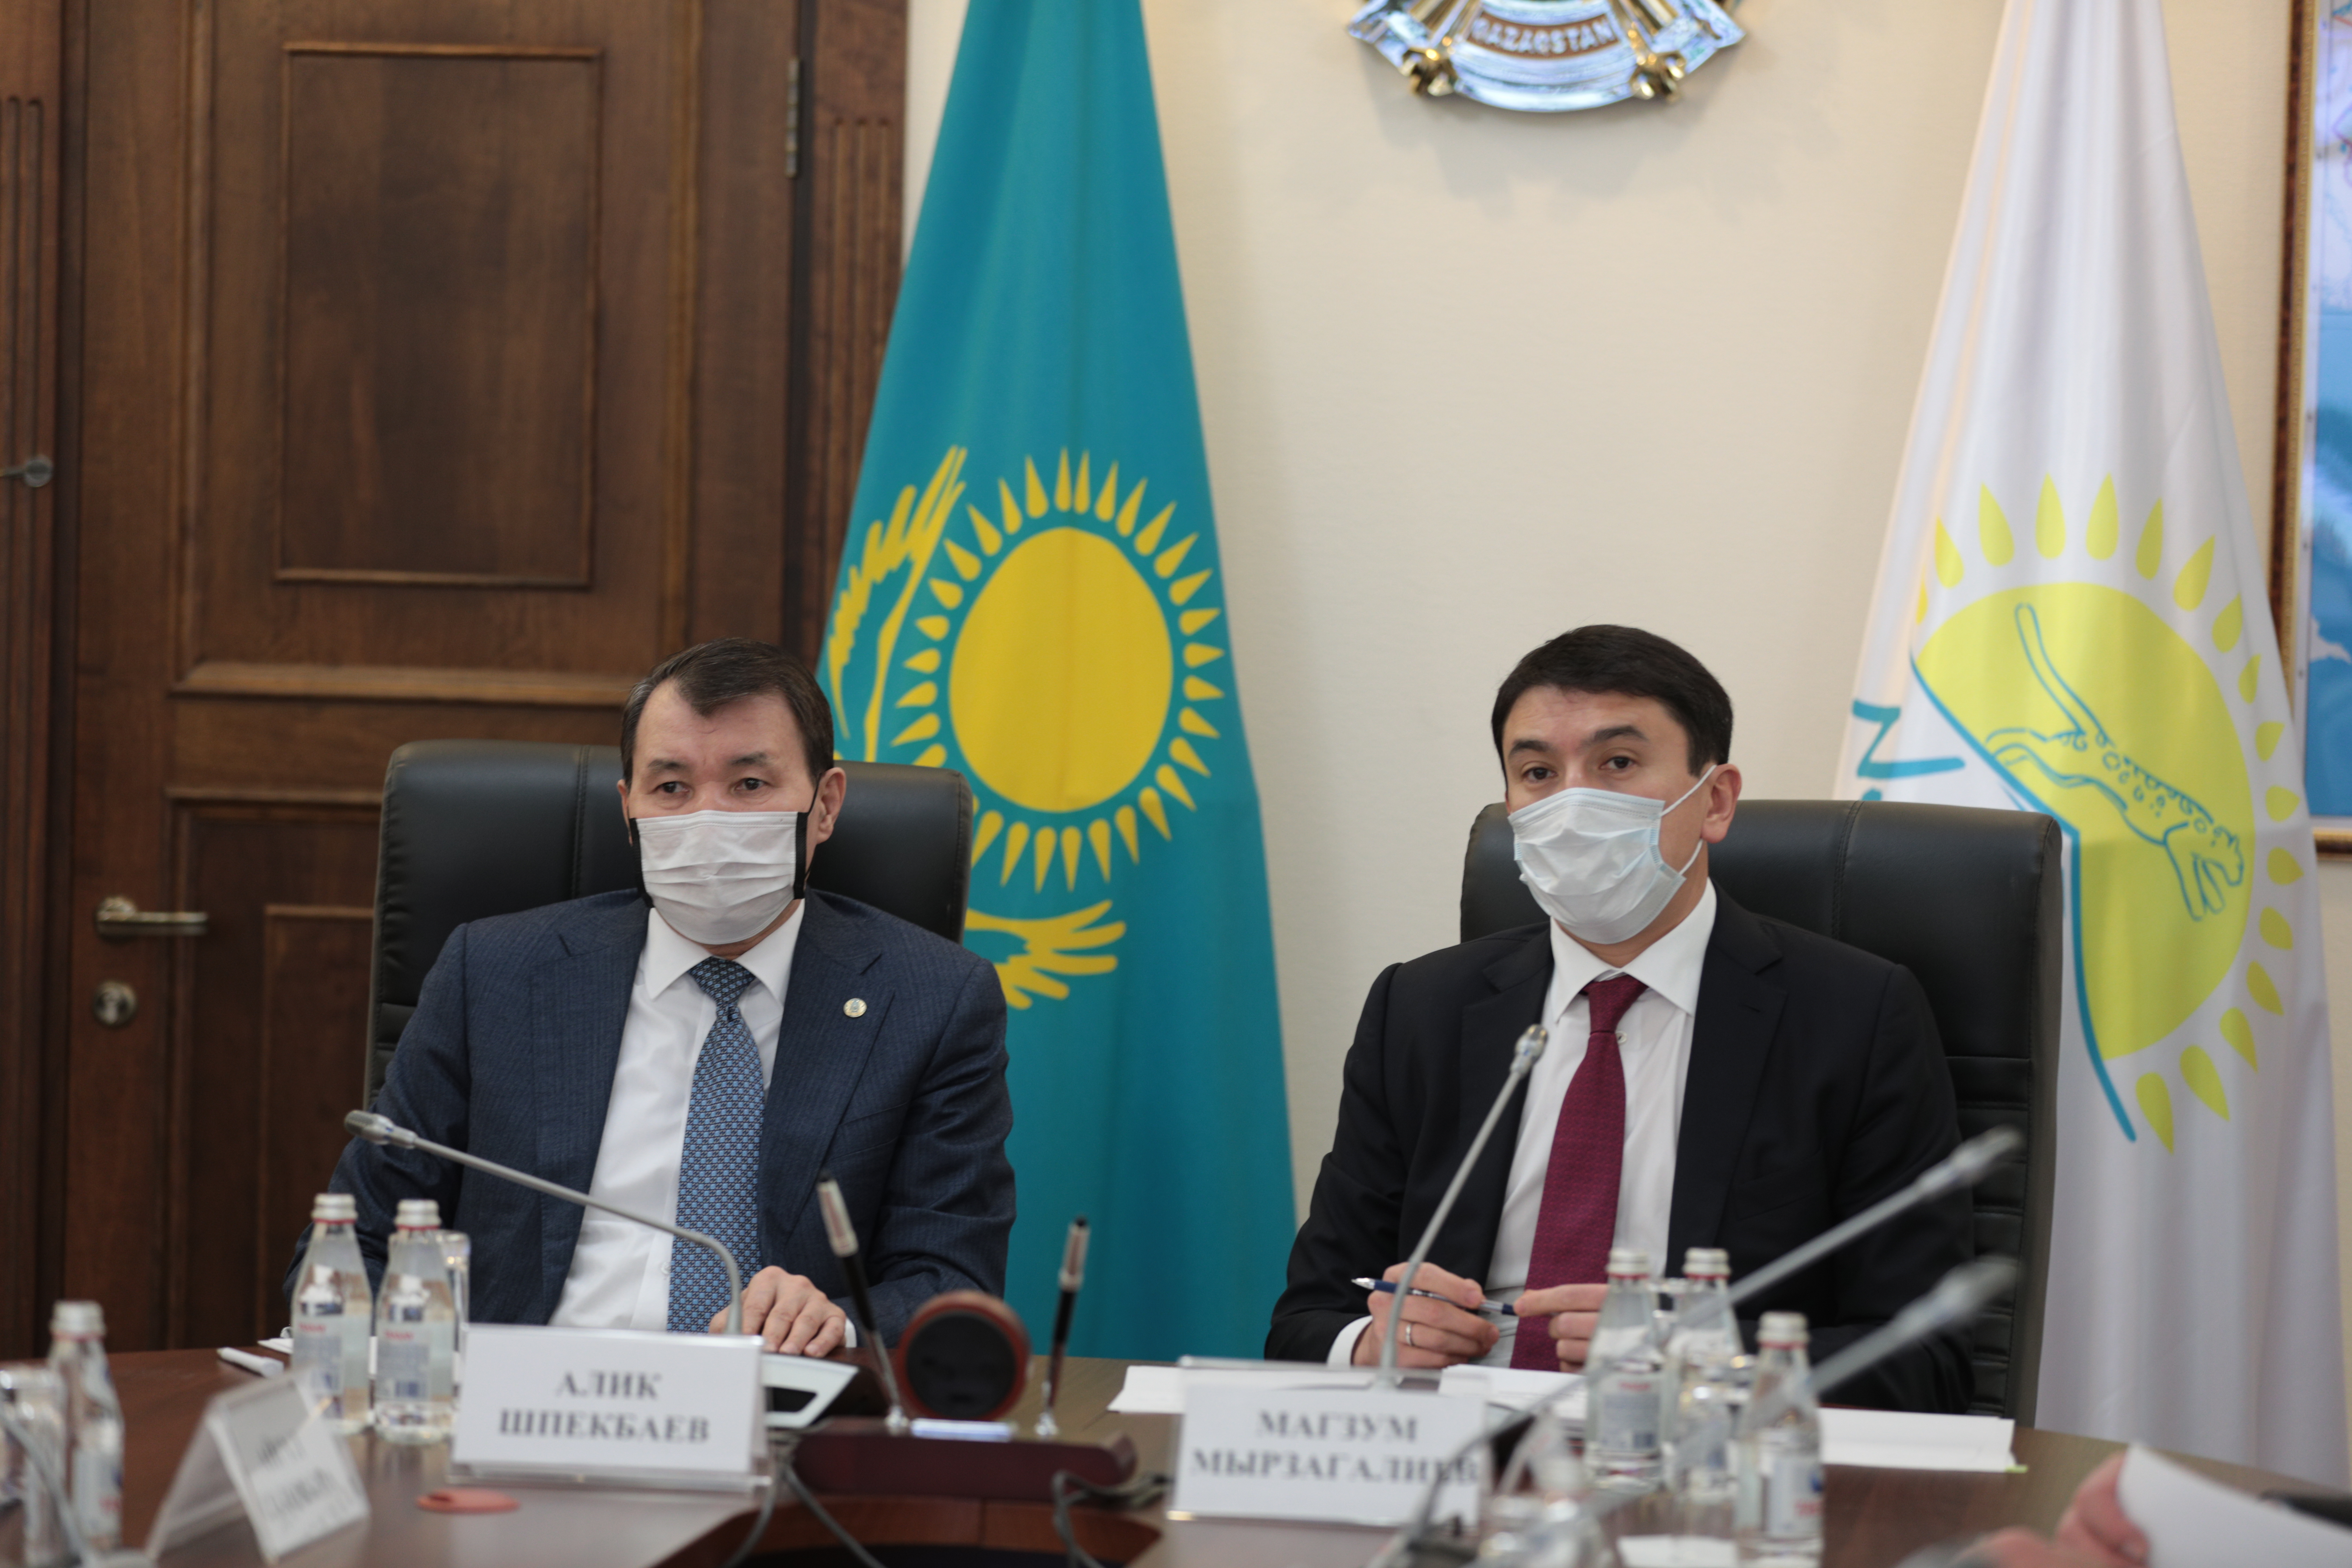 The Ministry of Ecology adheres to the principle of zero tolerance for corruption